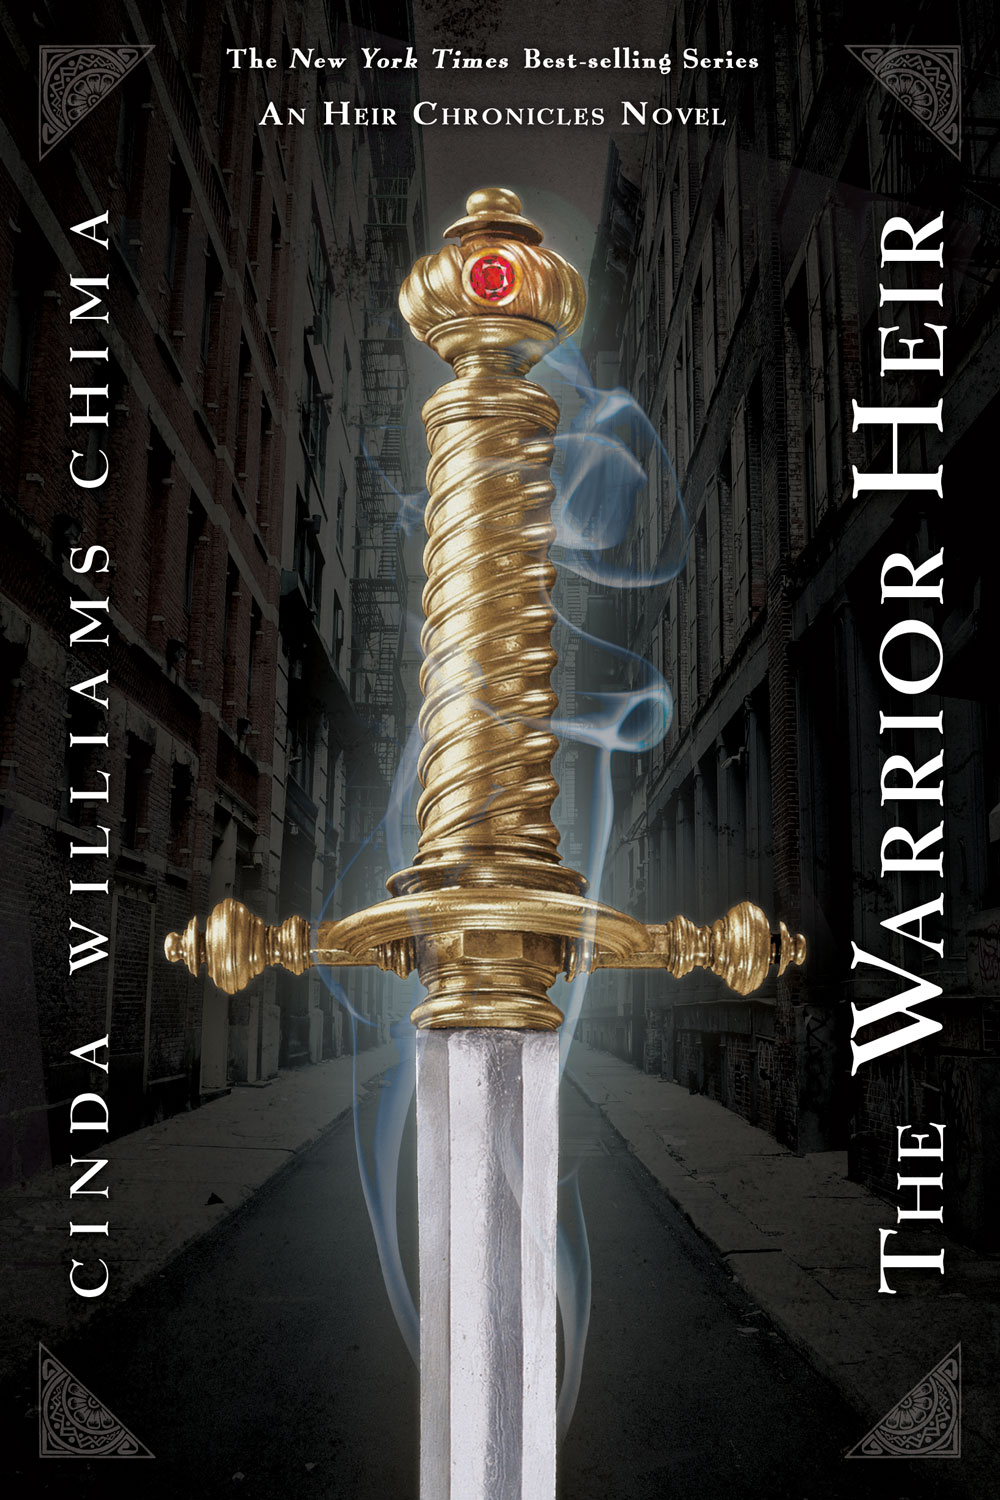 THE WARRIOR HEIR By Cinda Williams Chima in OutlooK-12 Magazine